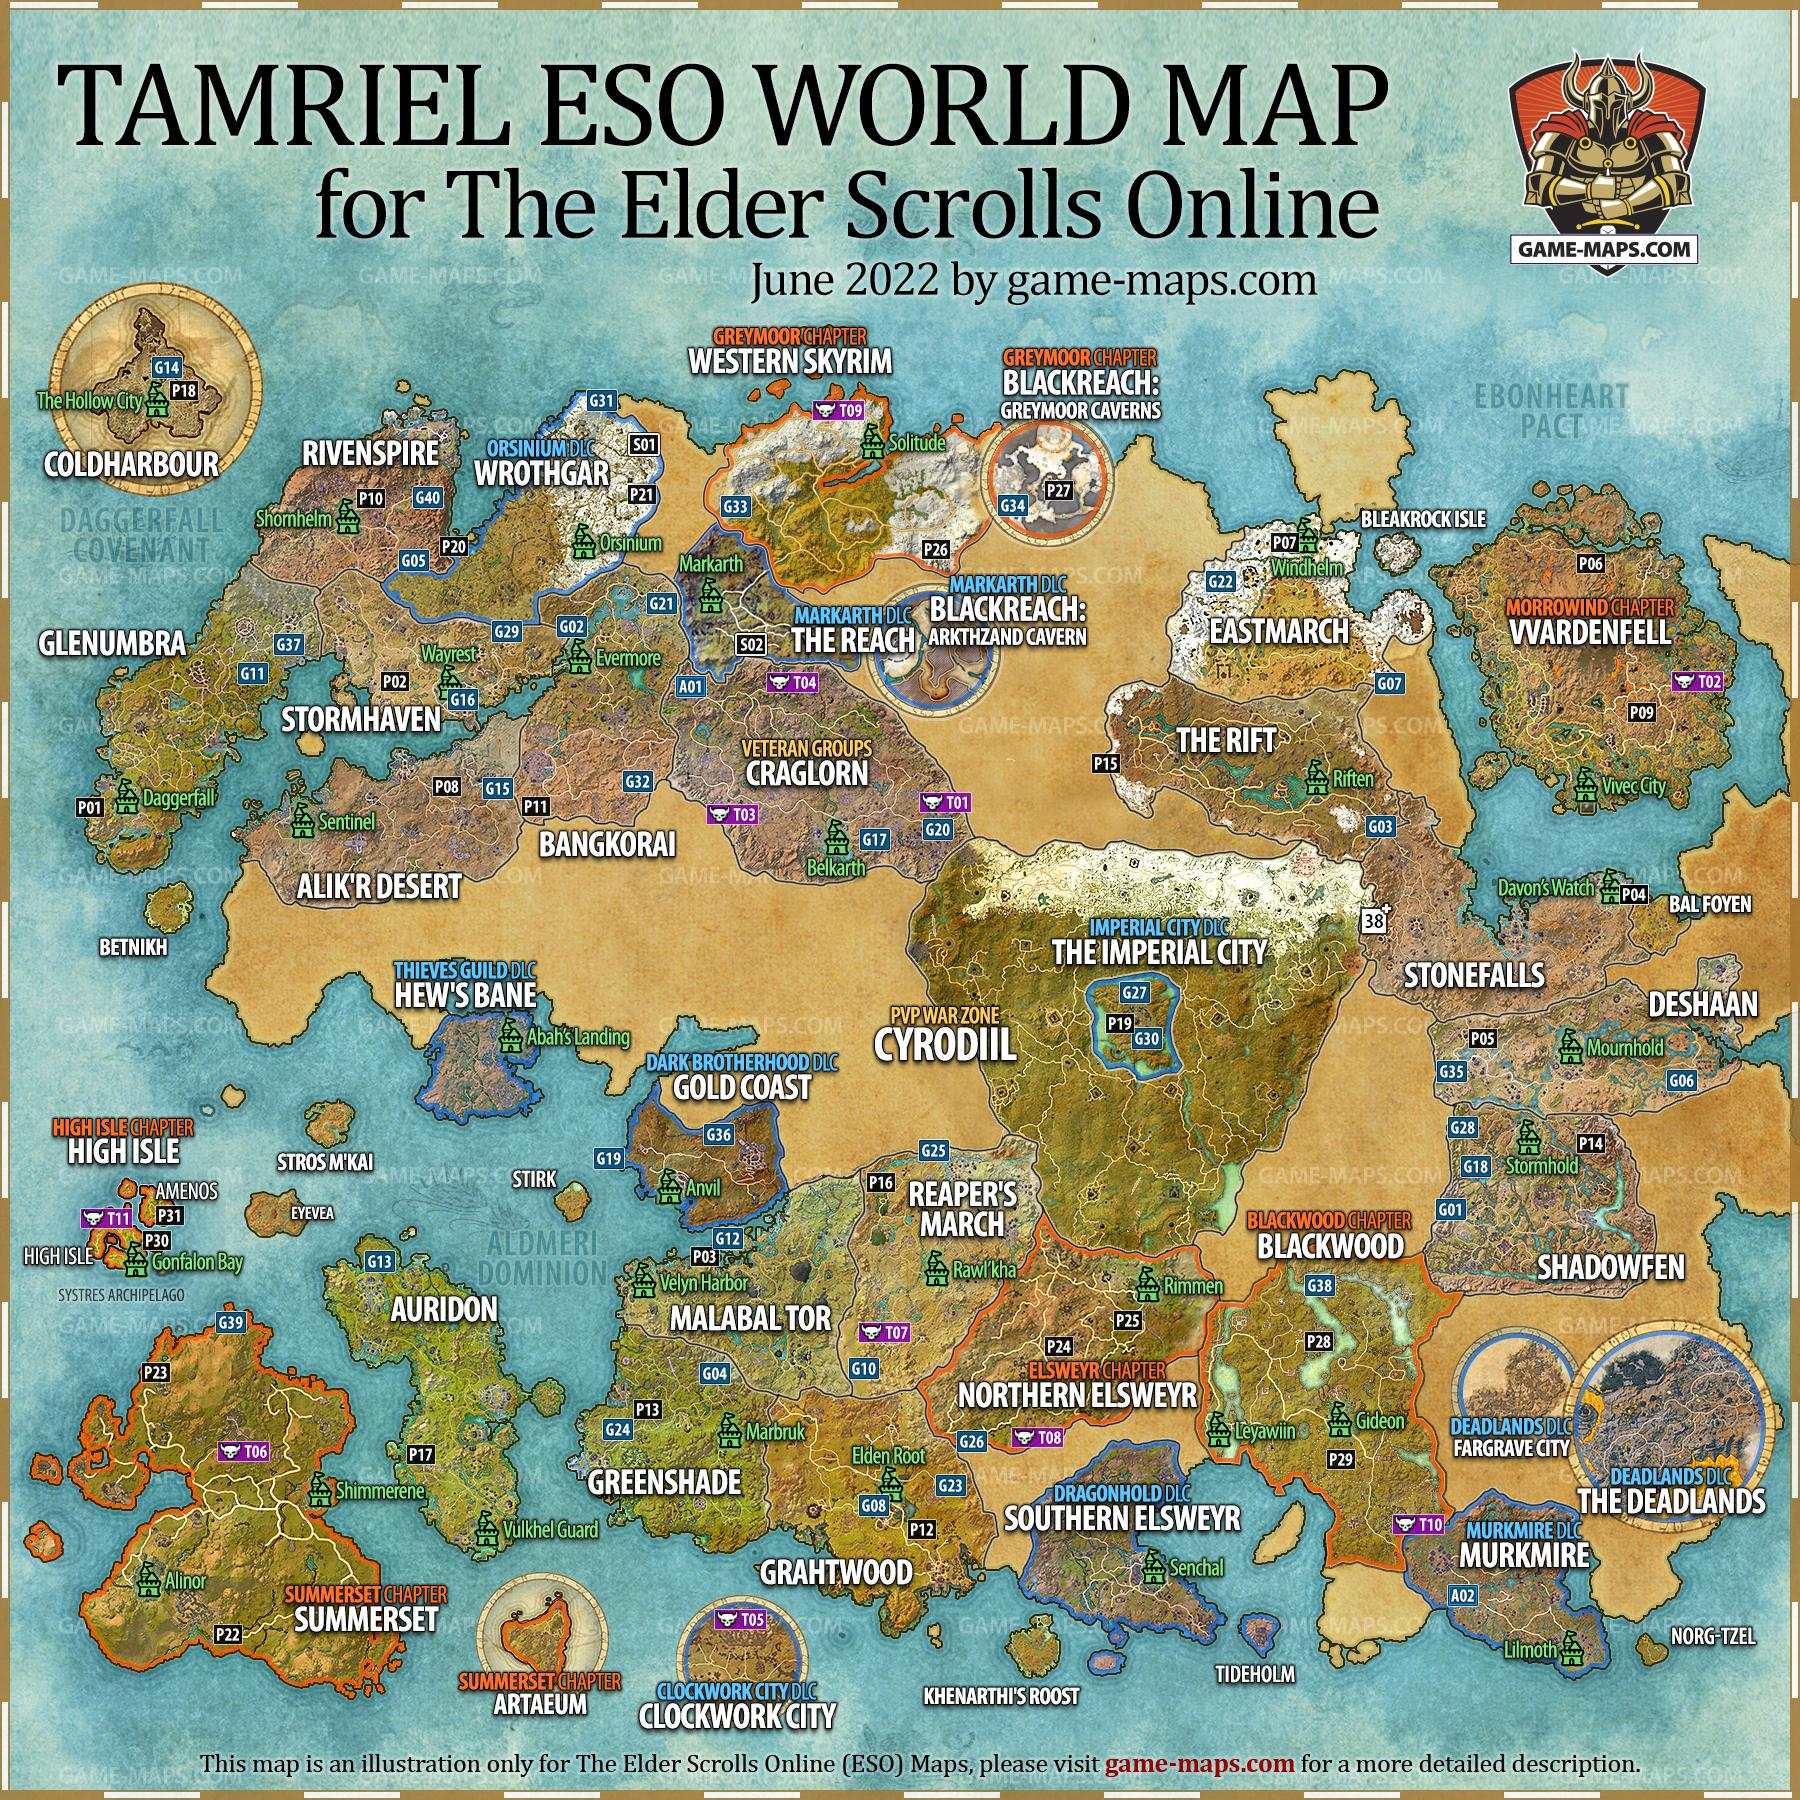 Tamriel world map for the elder scrolls online game maps tamriel eso world map for the elder scrolls online gumiabroncs